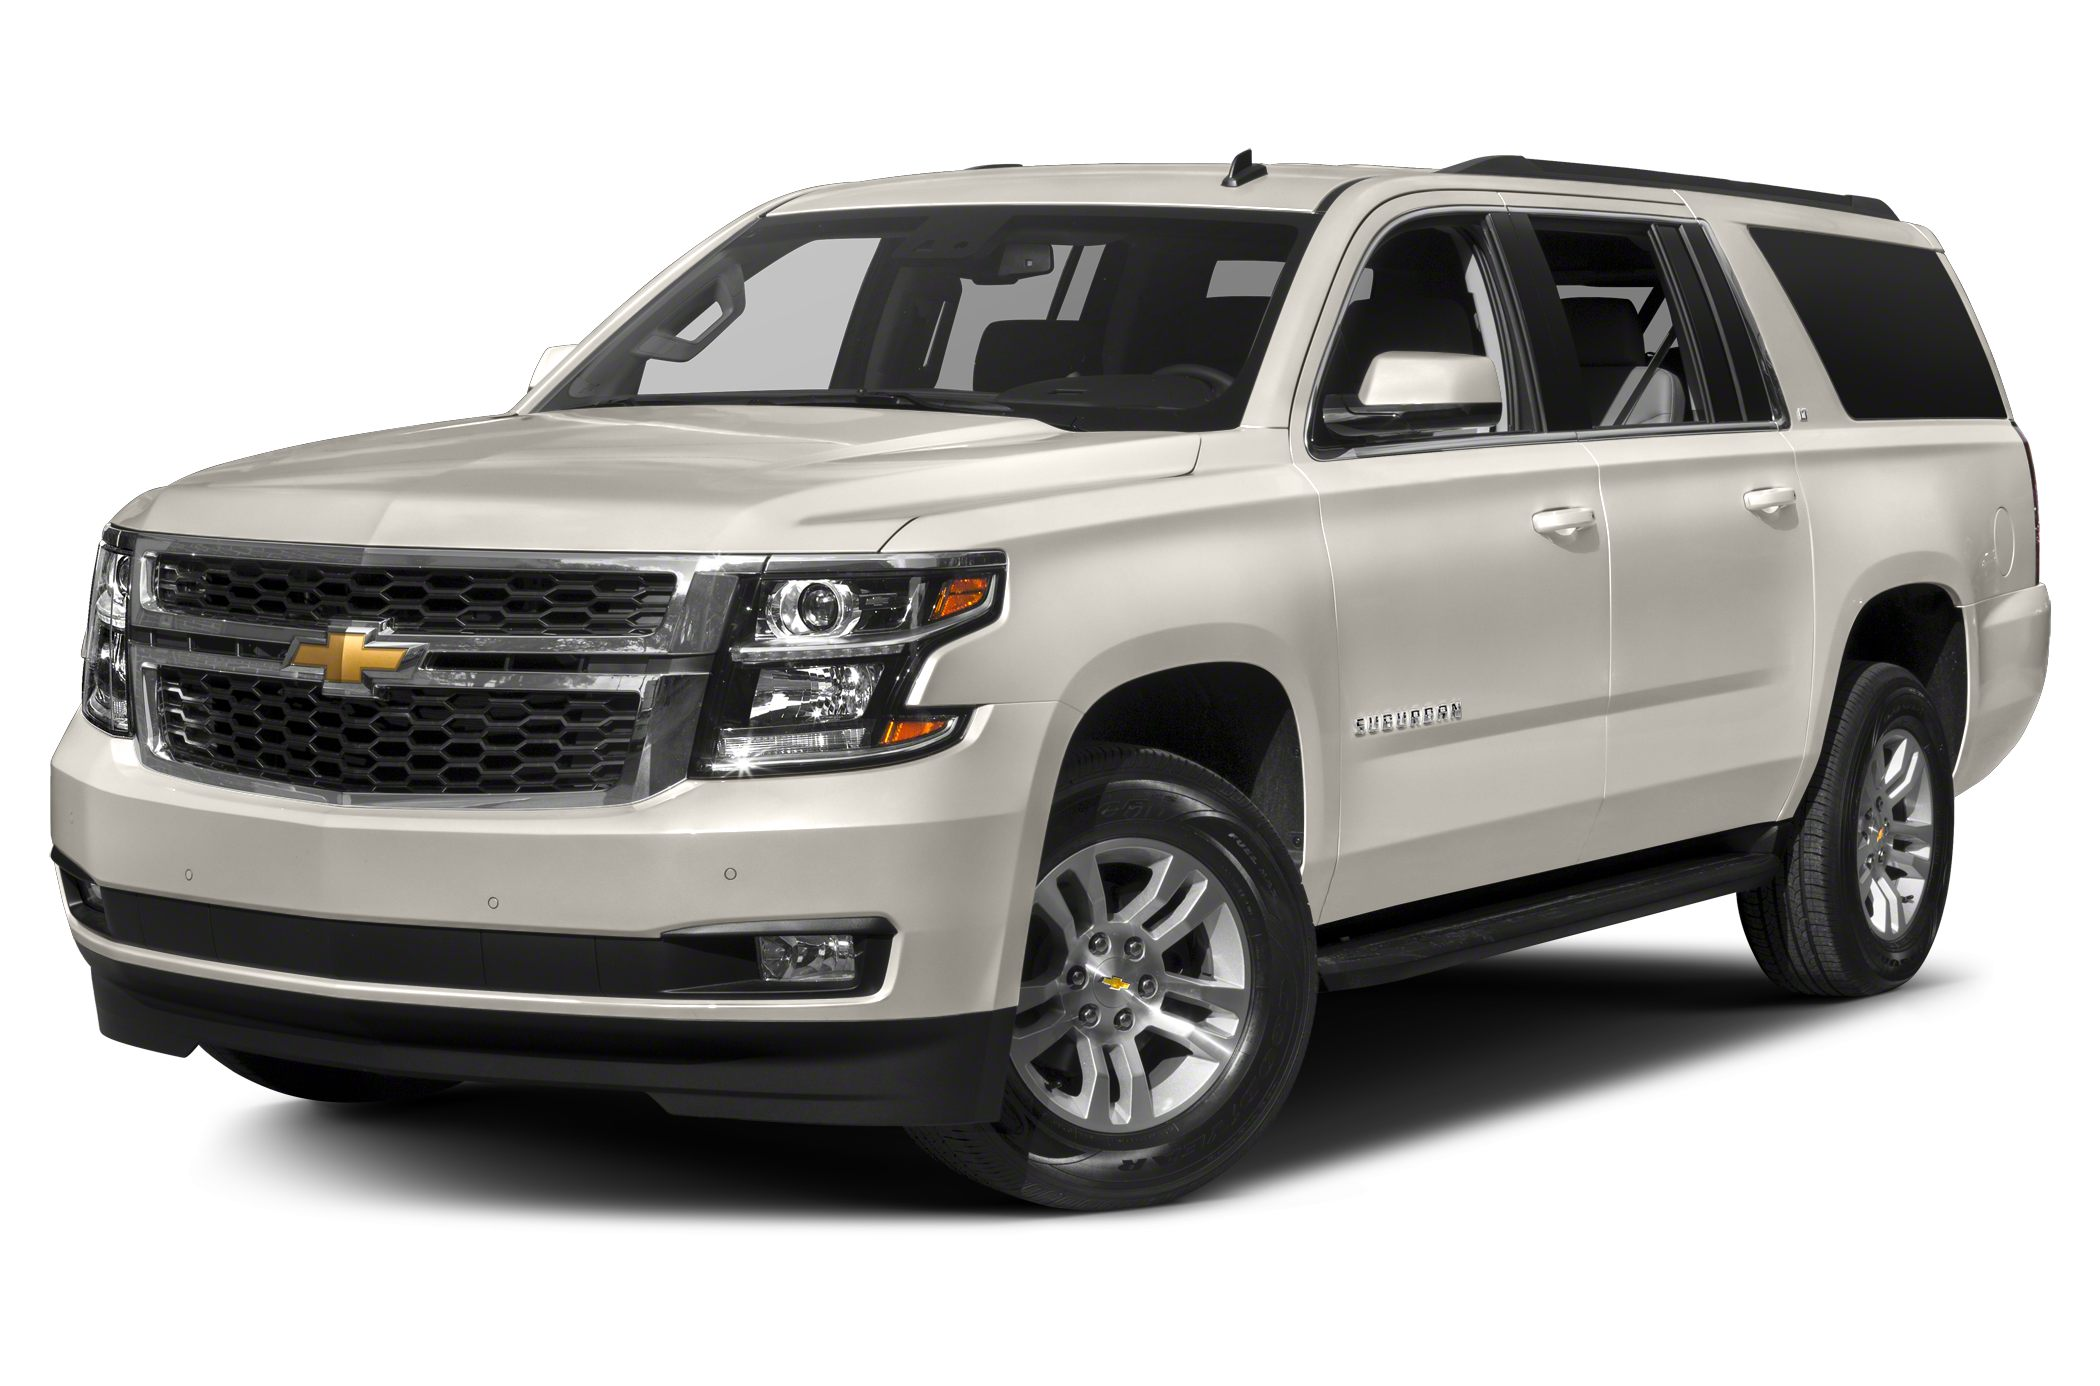 2015 Chevrolet Suburban 1500 LTZ SUV for sale in Zebulon for $69,495 with 0 miles